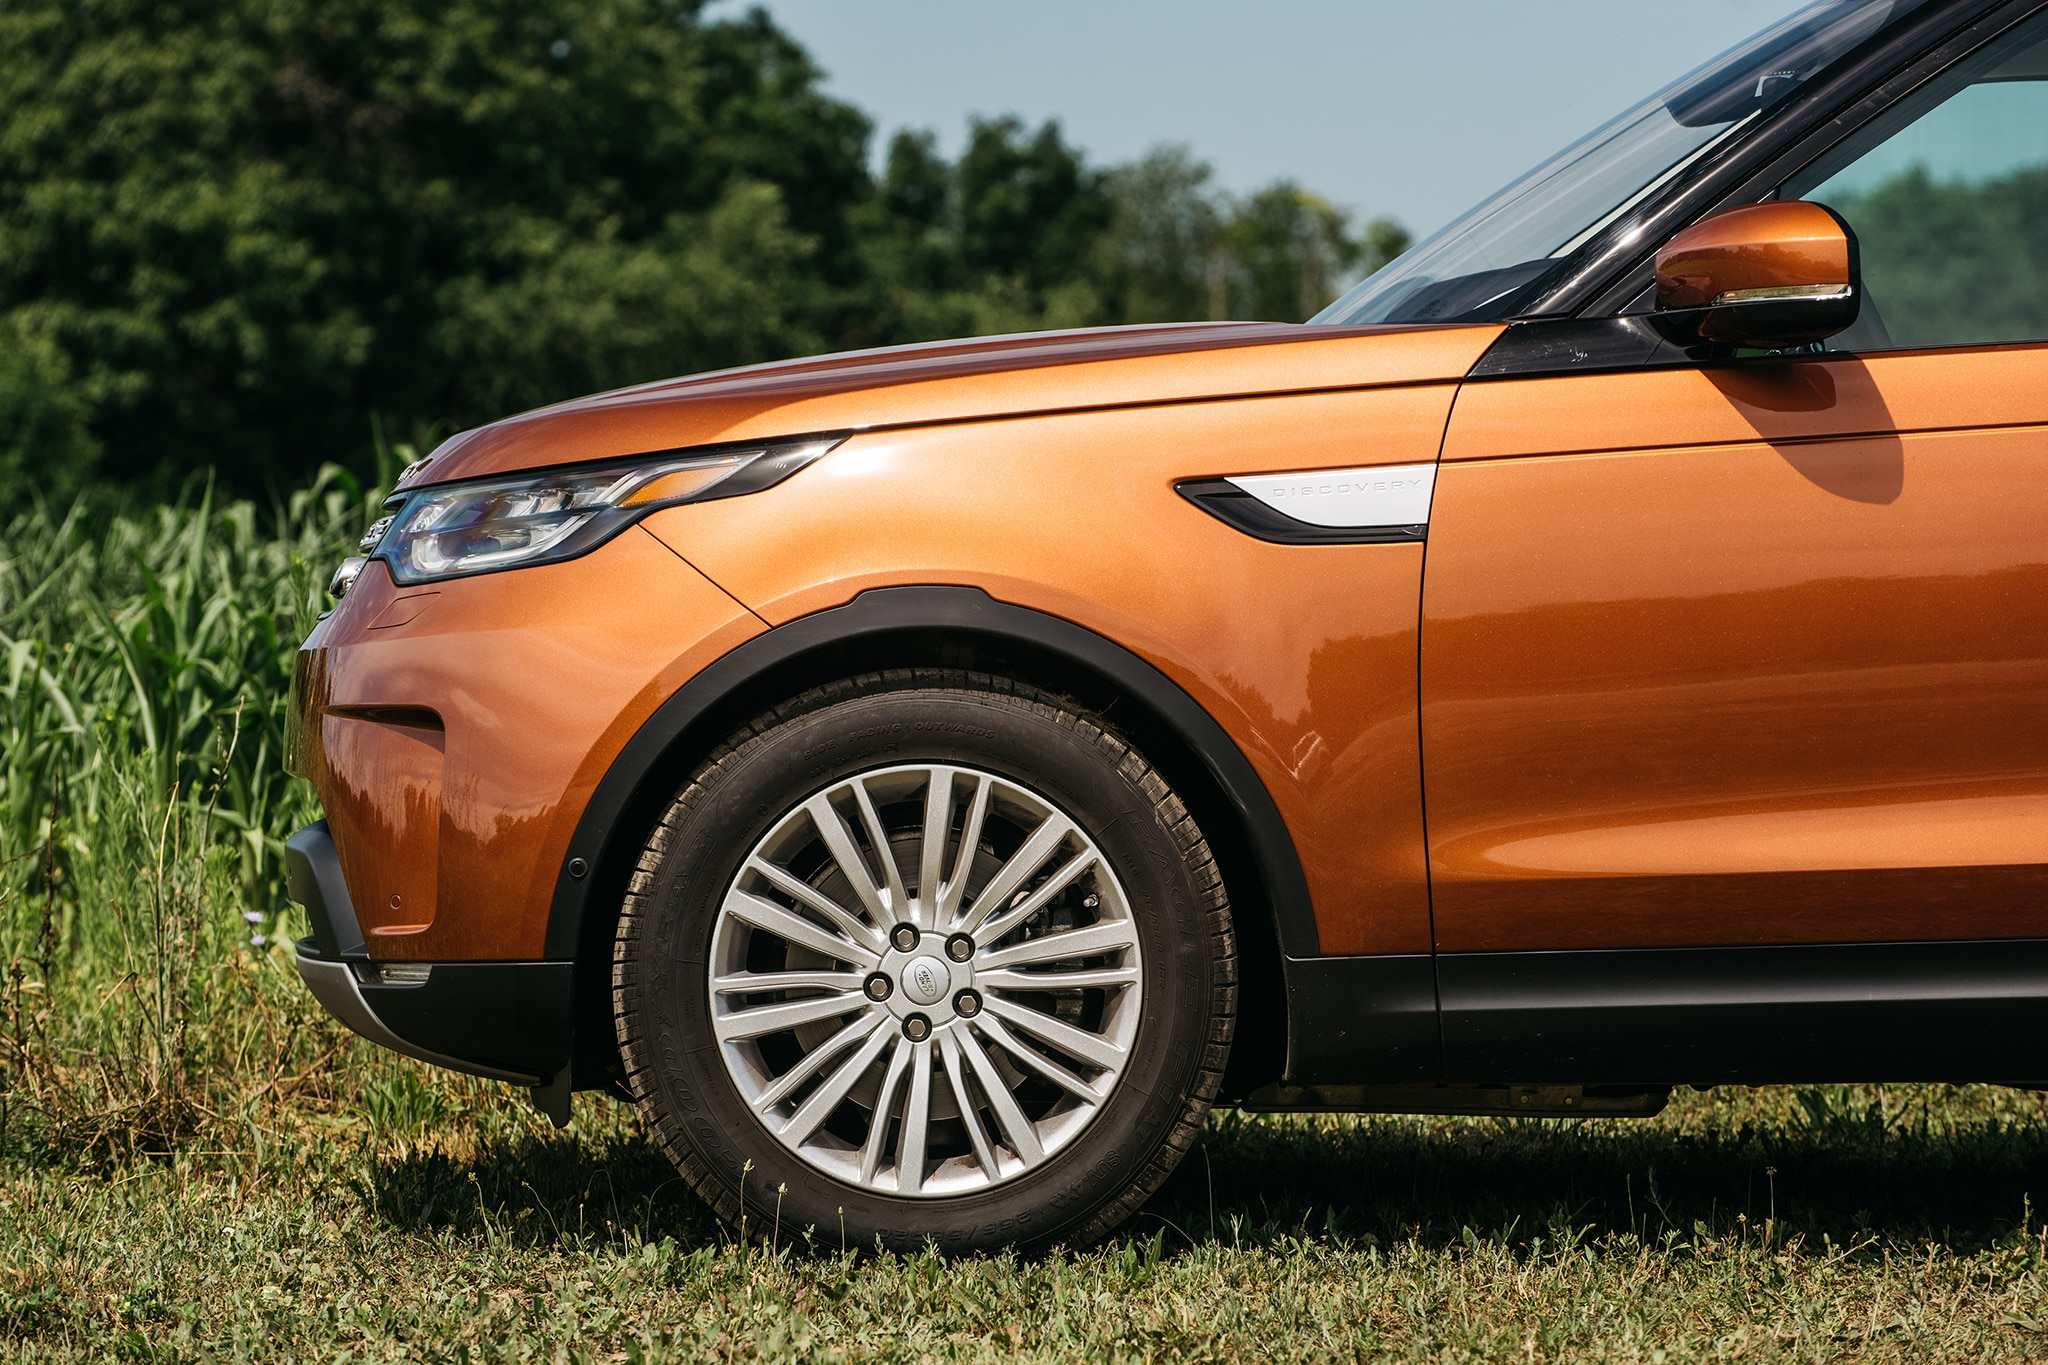 2017 Land Rover Discovery Td6 HSE Wheel 02